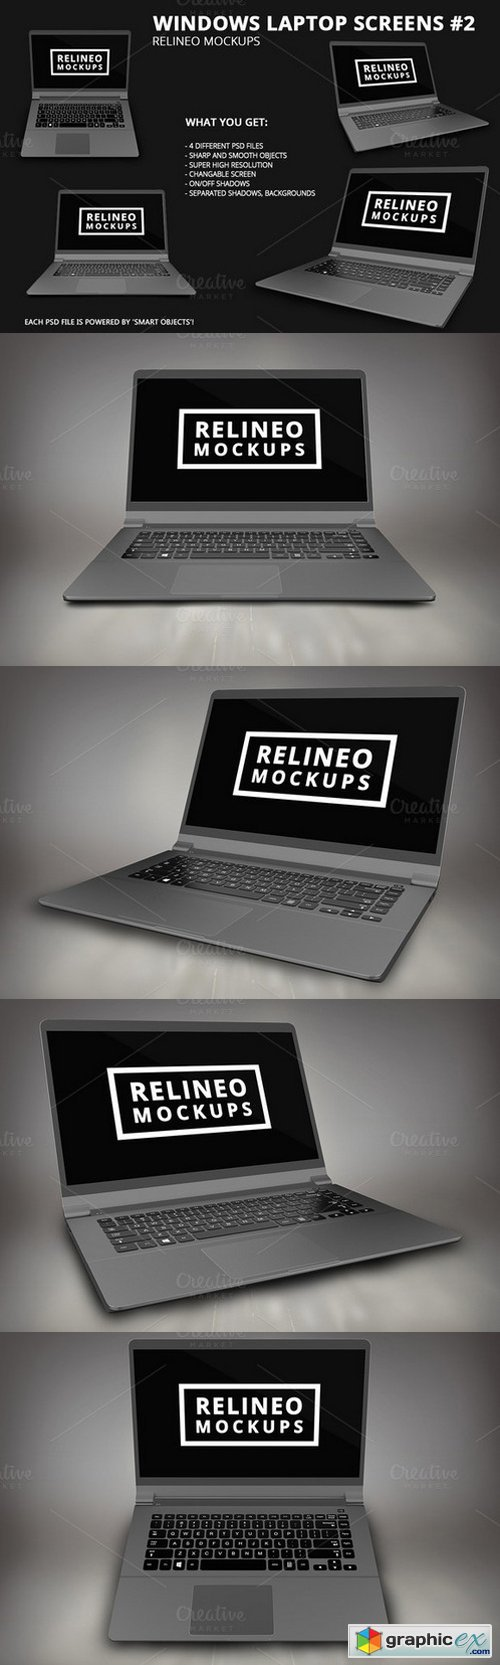 Relineo - Windows Laptop Pack #2